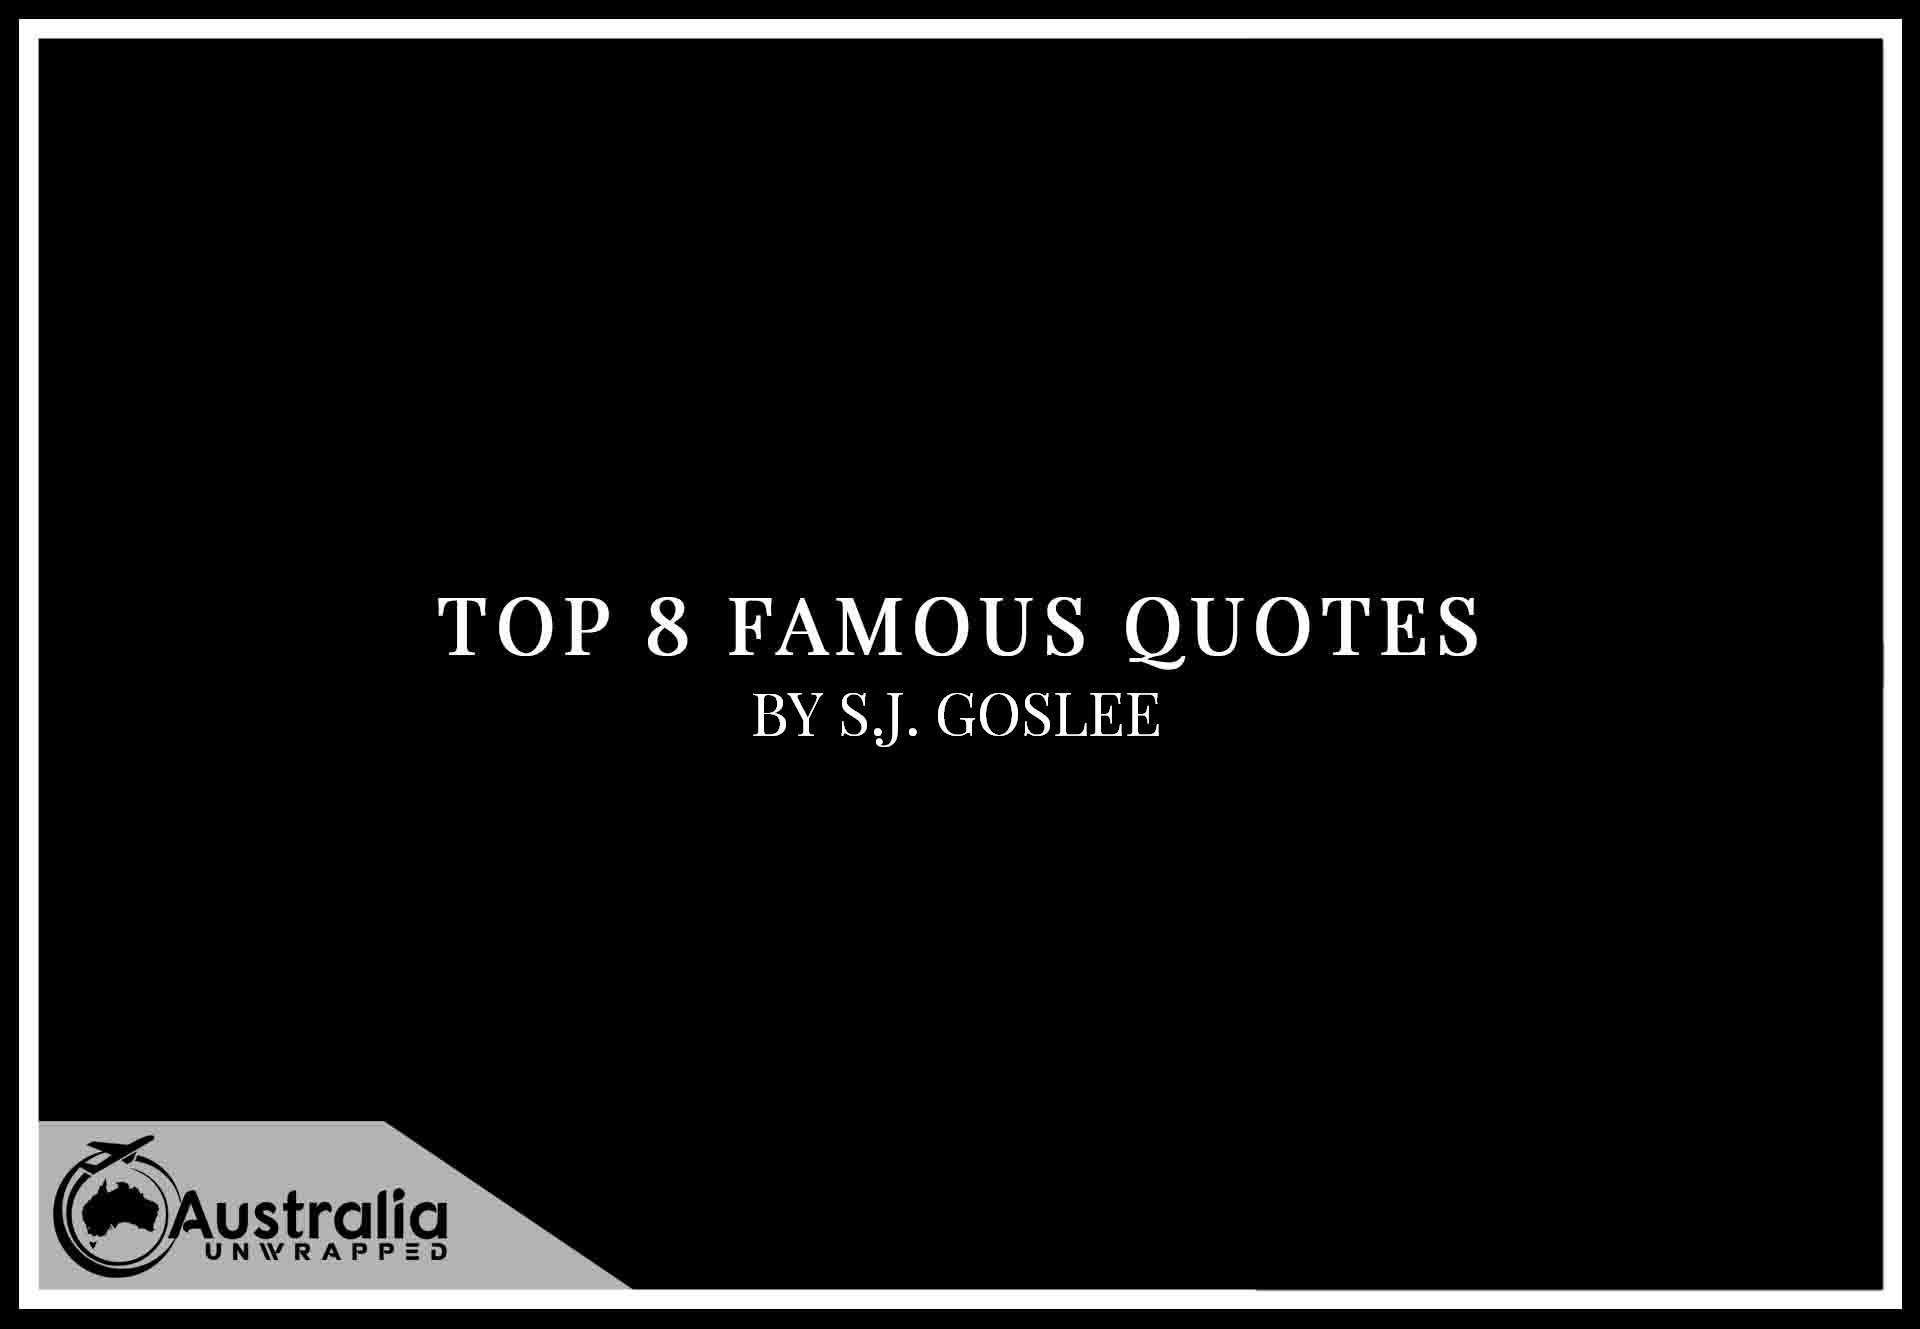 Top 8 Famous Quotes by Author S.J. Goslee